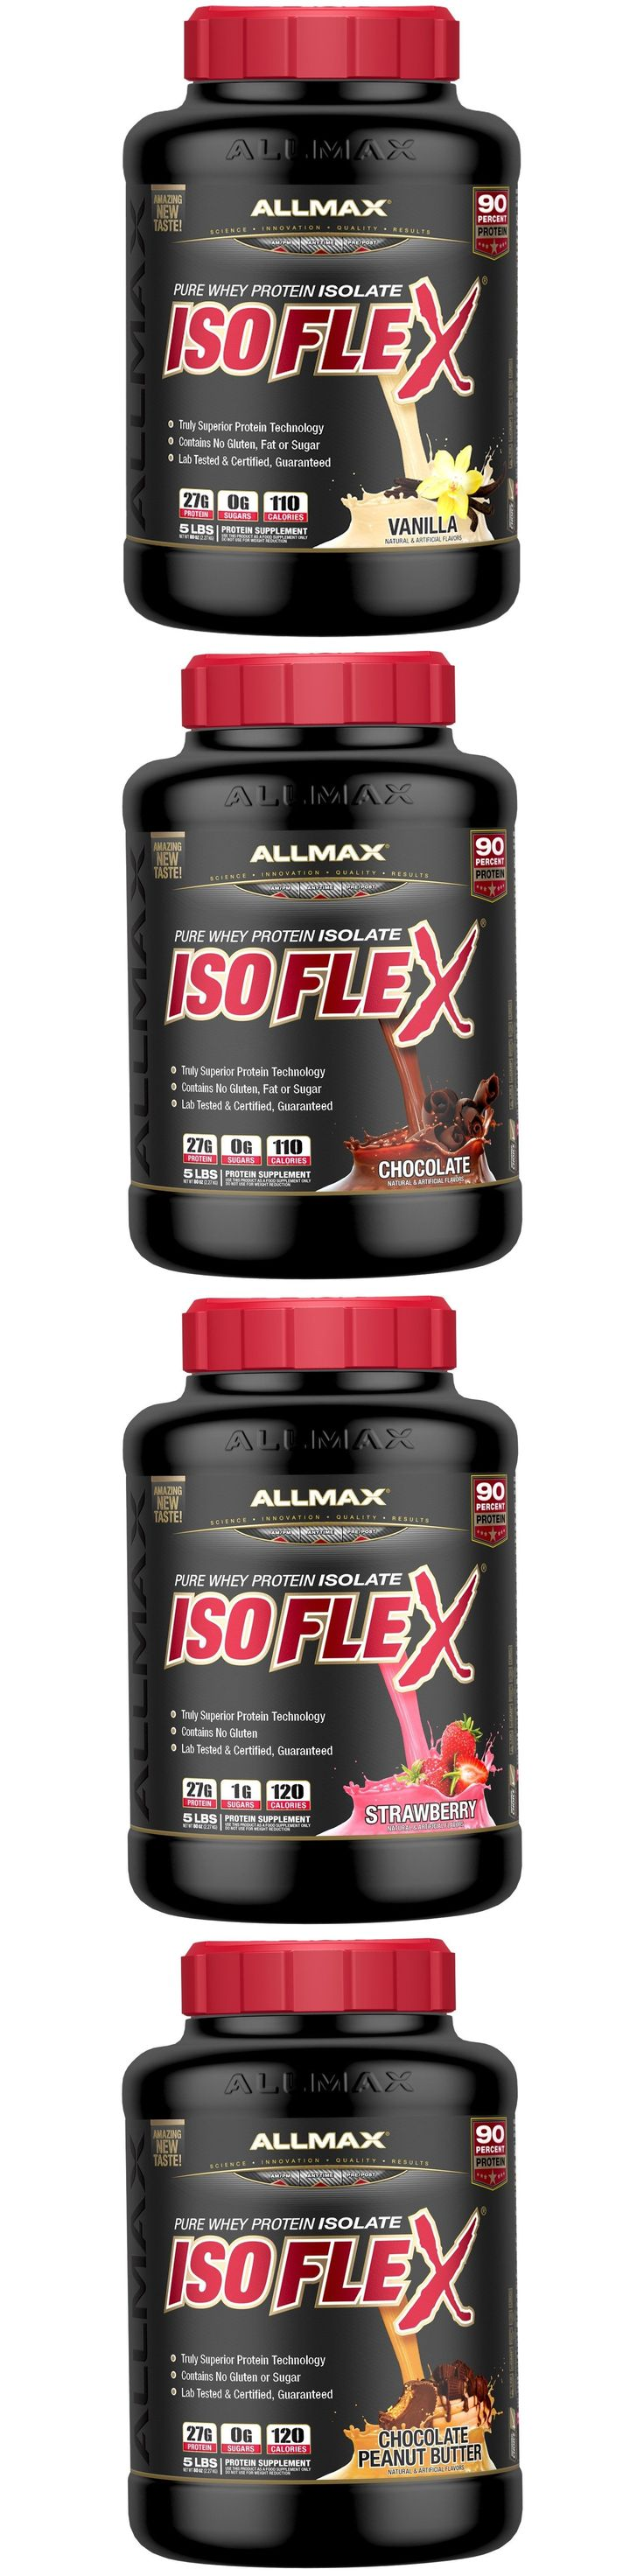 Health And Fitness: Allmax Nutrition Isoflex Isolate Whey Protein - Free Shipping! BUY IT NOW ONLY: $36.99